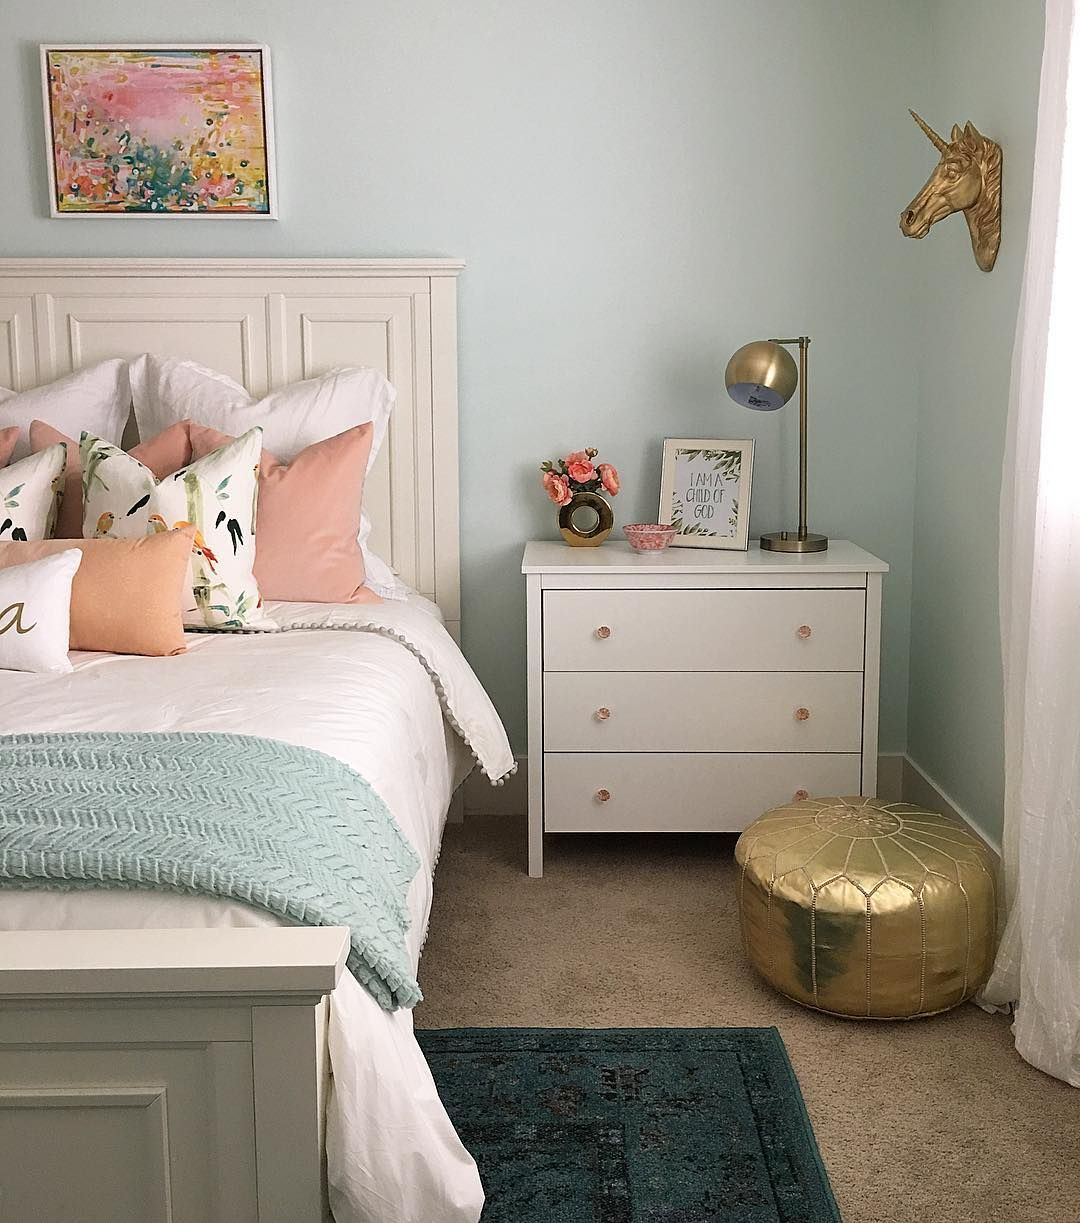 Kids Bedroom Colours ️wall color is embellished bluesherwin williams mixed at 50